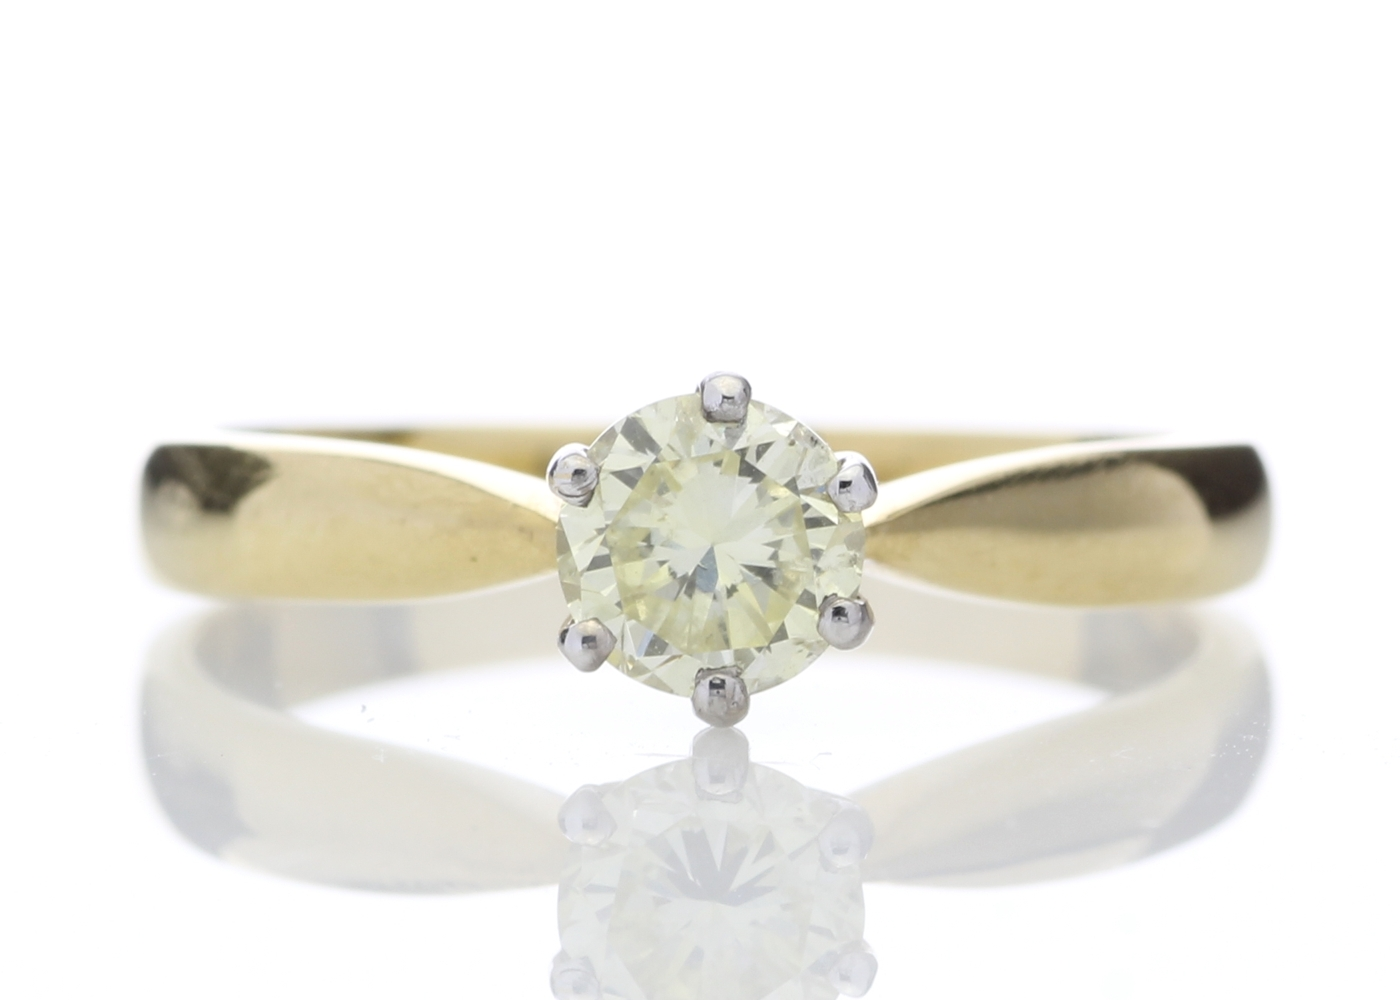 Lot 2 - 18ct Single Stone Fancy Yellow Diamond Ring 0.56 Carats